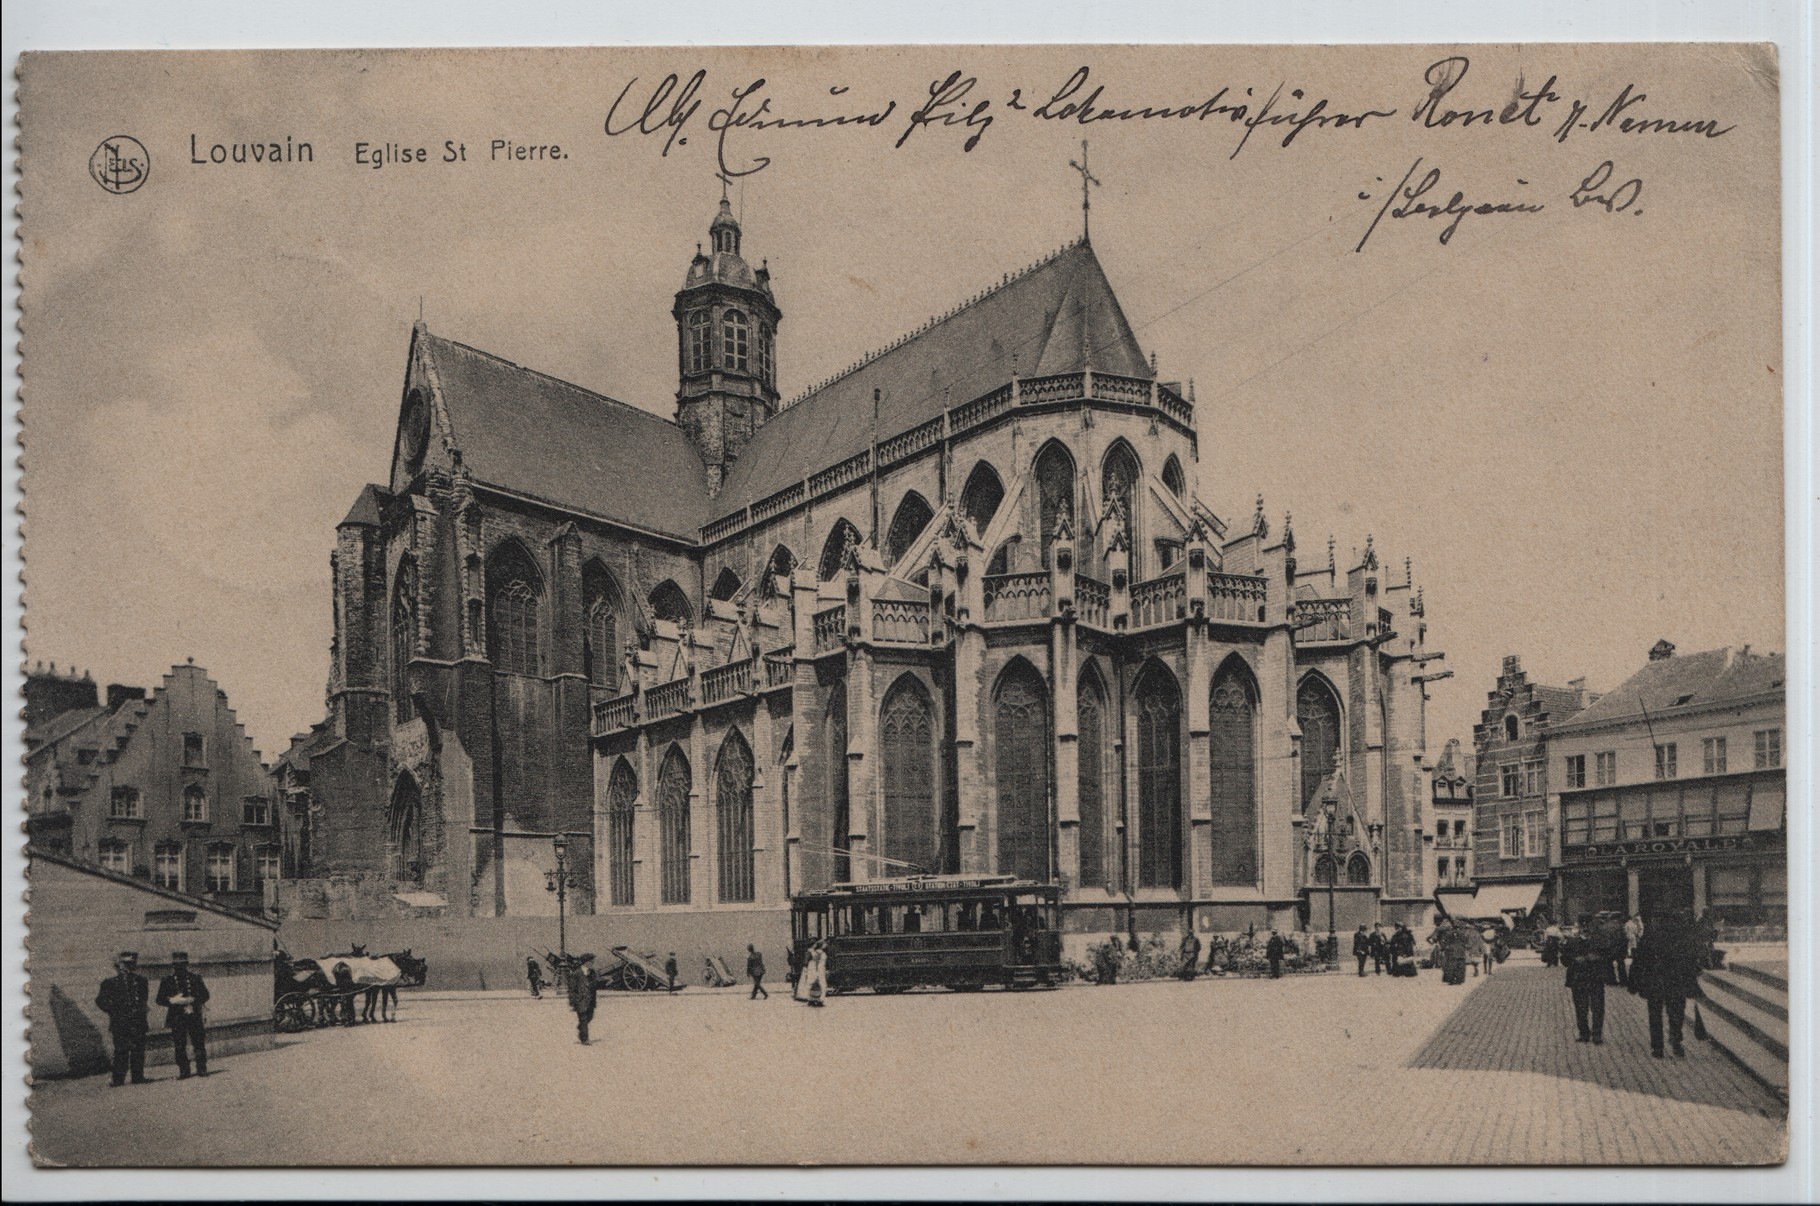 12. St Peter's church Louvain